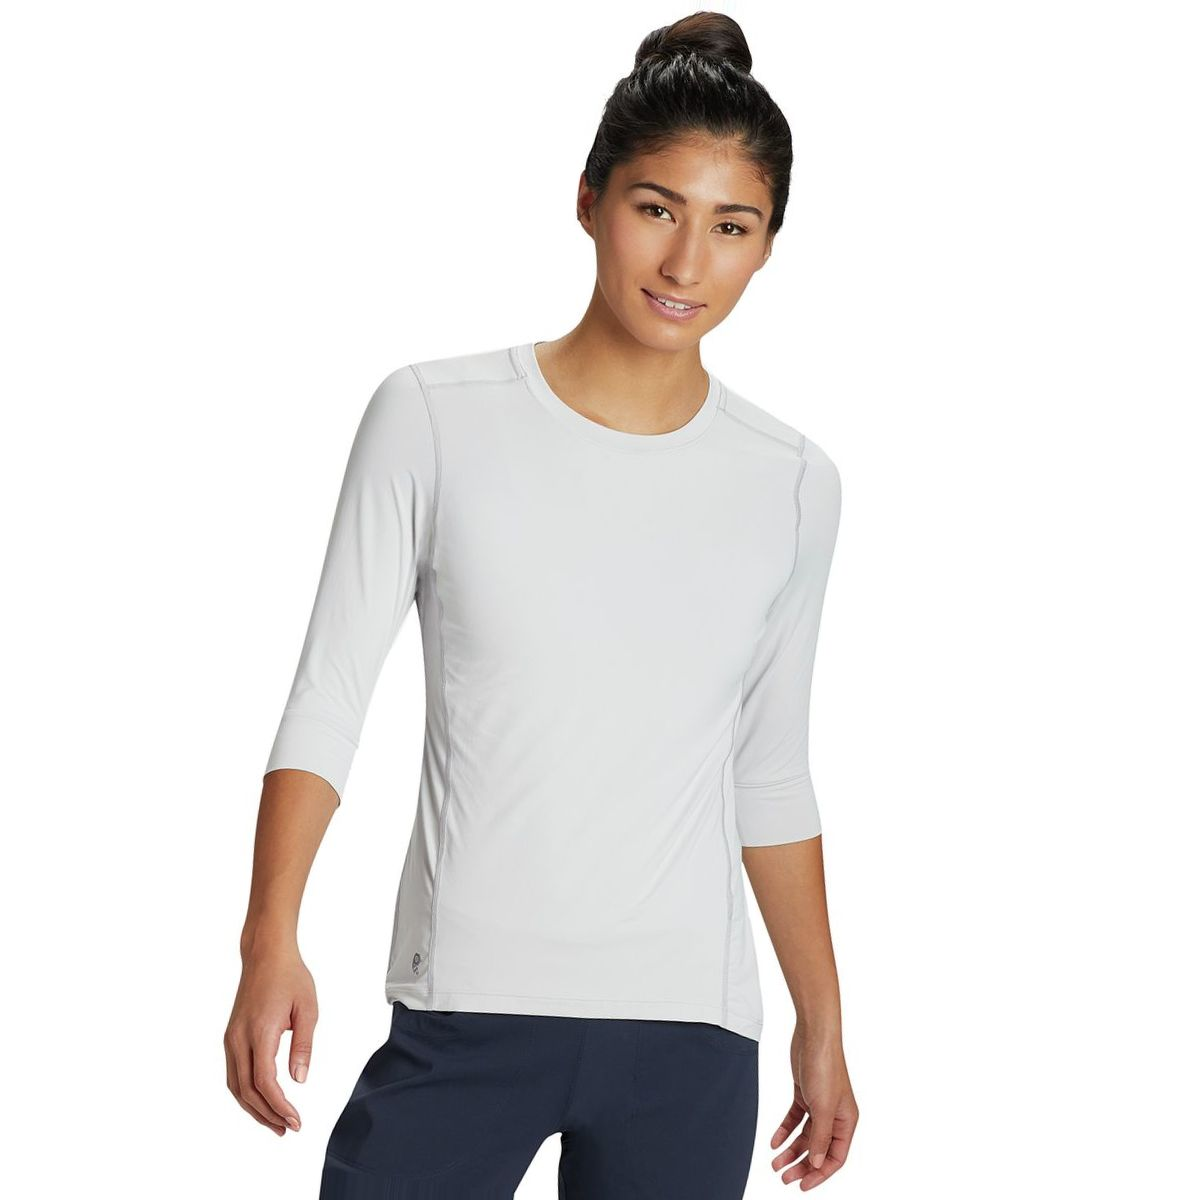 Mountain Hardwear Crater Lake 3/4 Crew Top - Women's